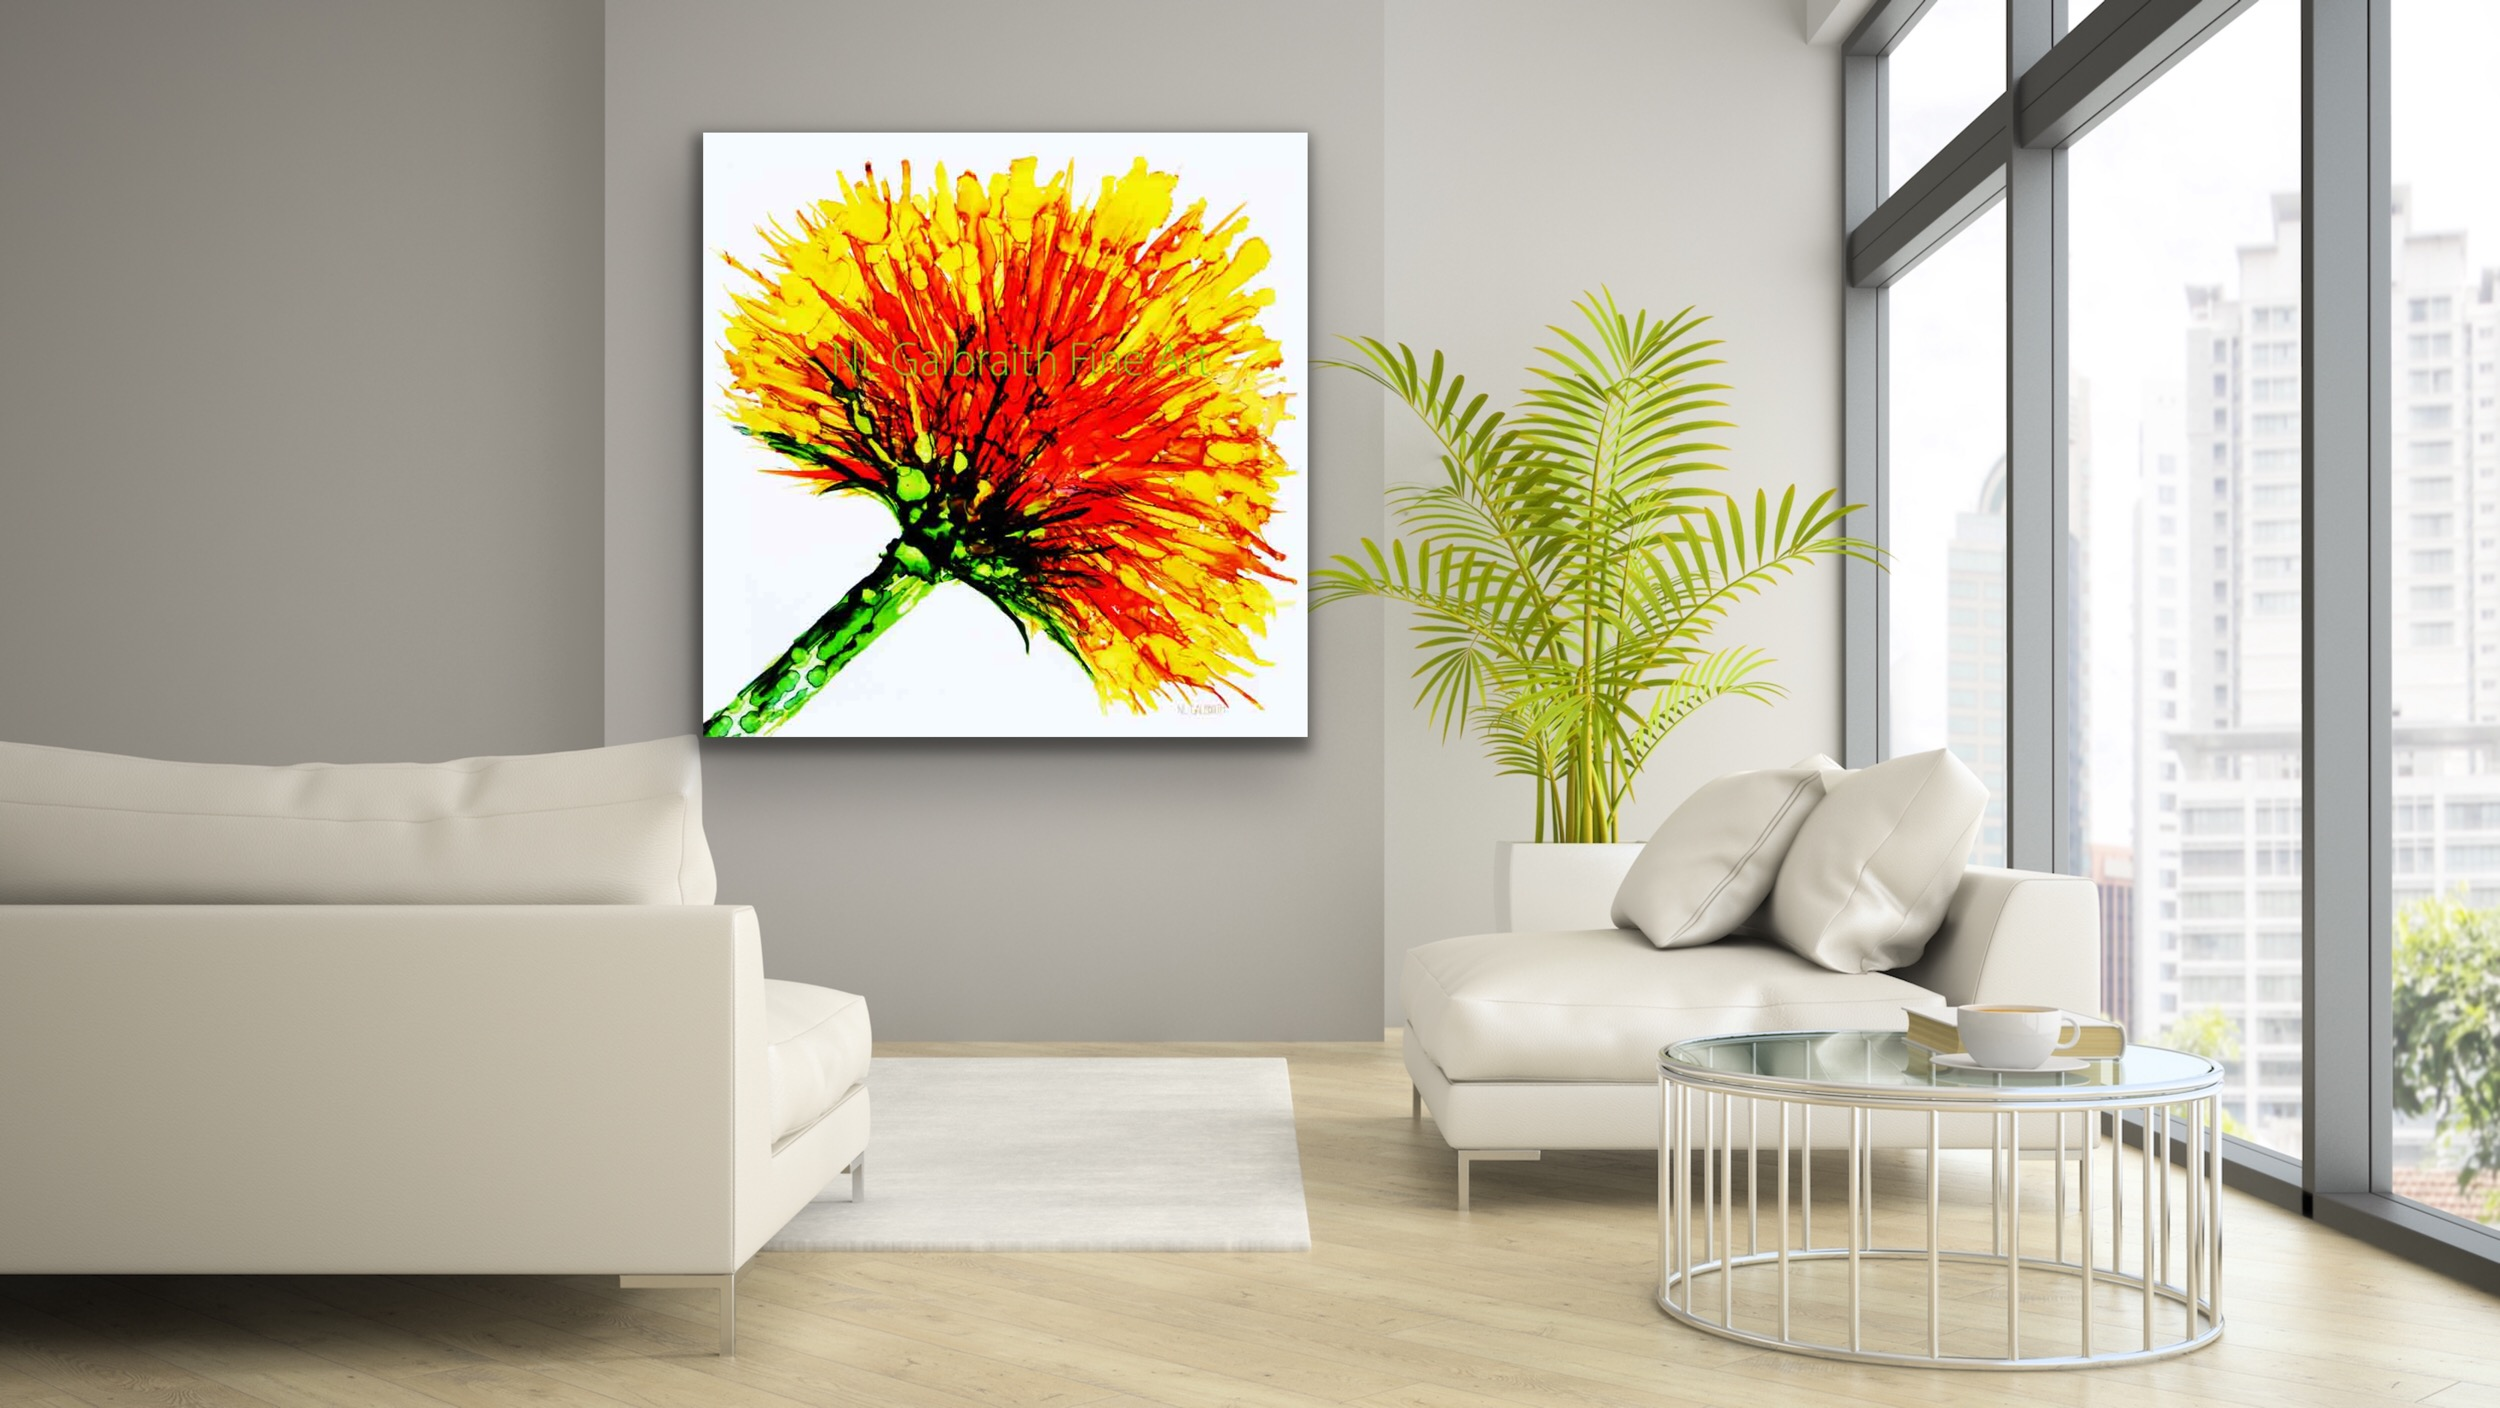 Oversized Yellow Orange Flower Graphic in a Loft Living Room